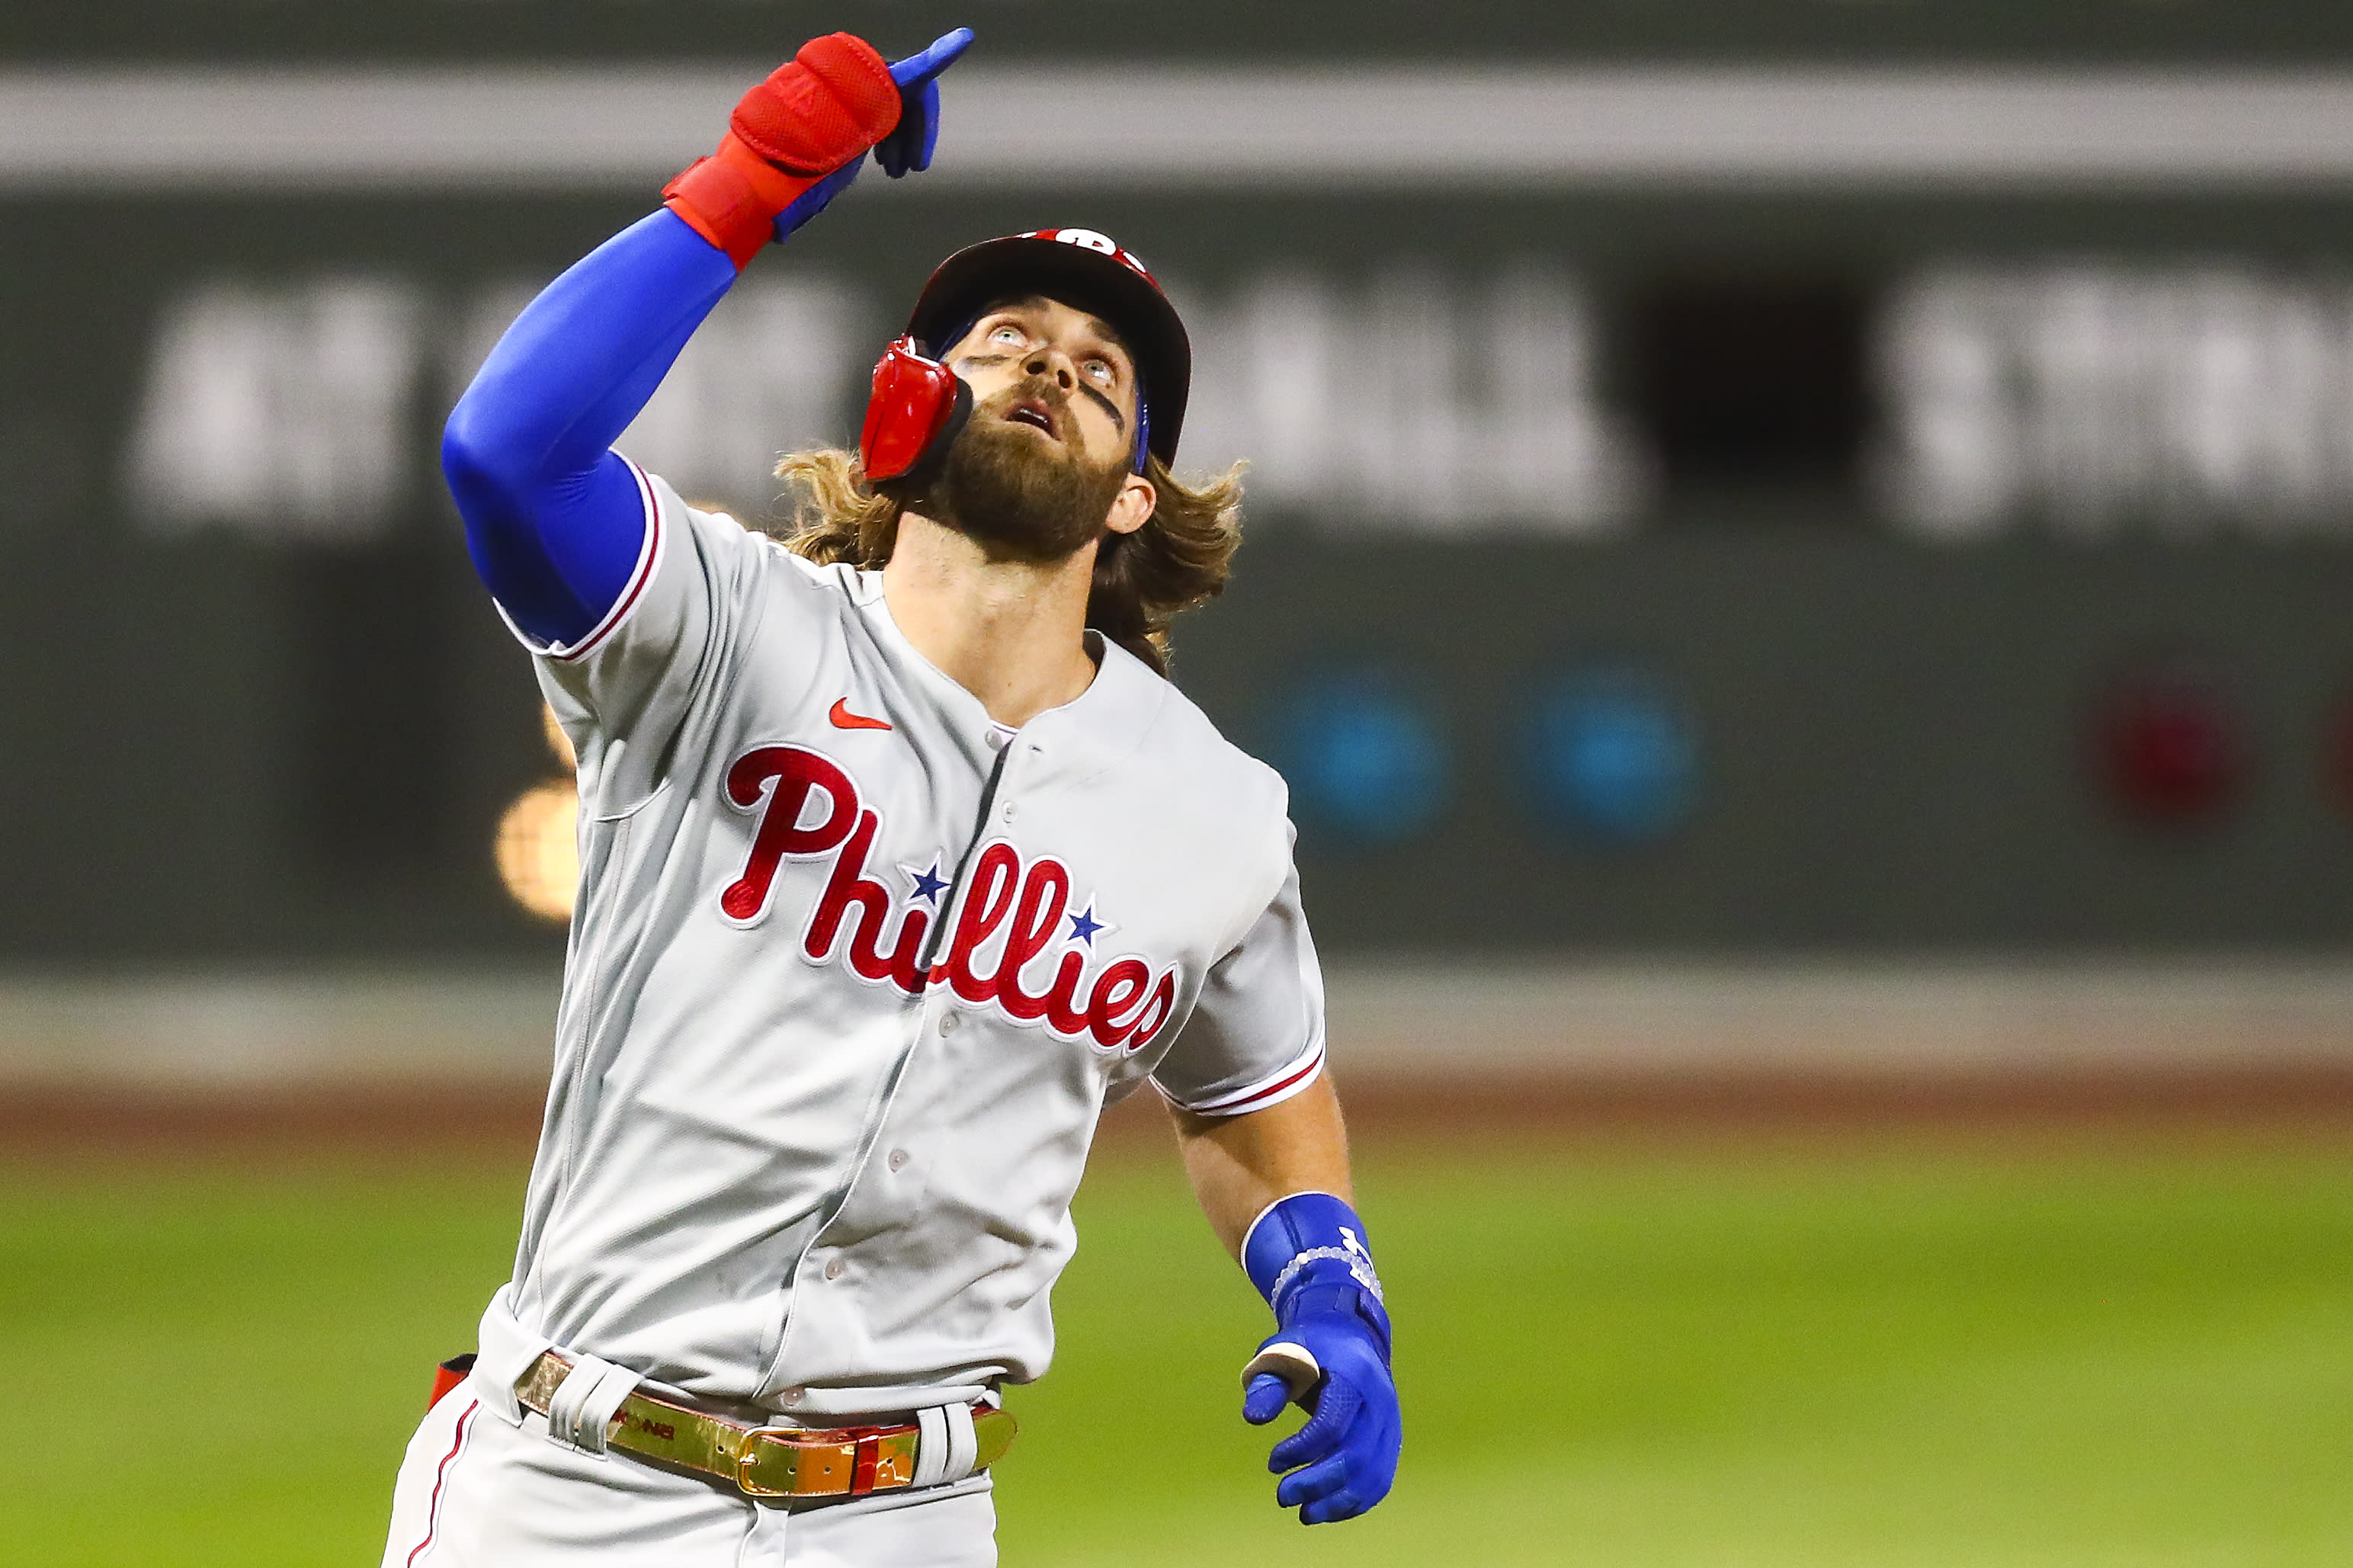 Bryce Harper continues to rake and a look around the league